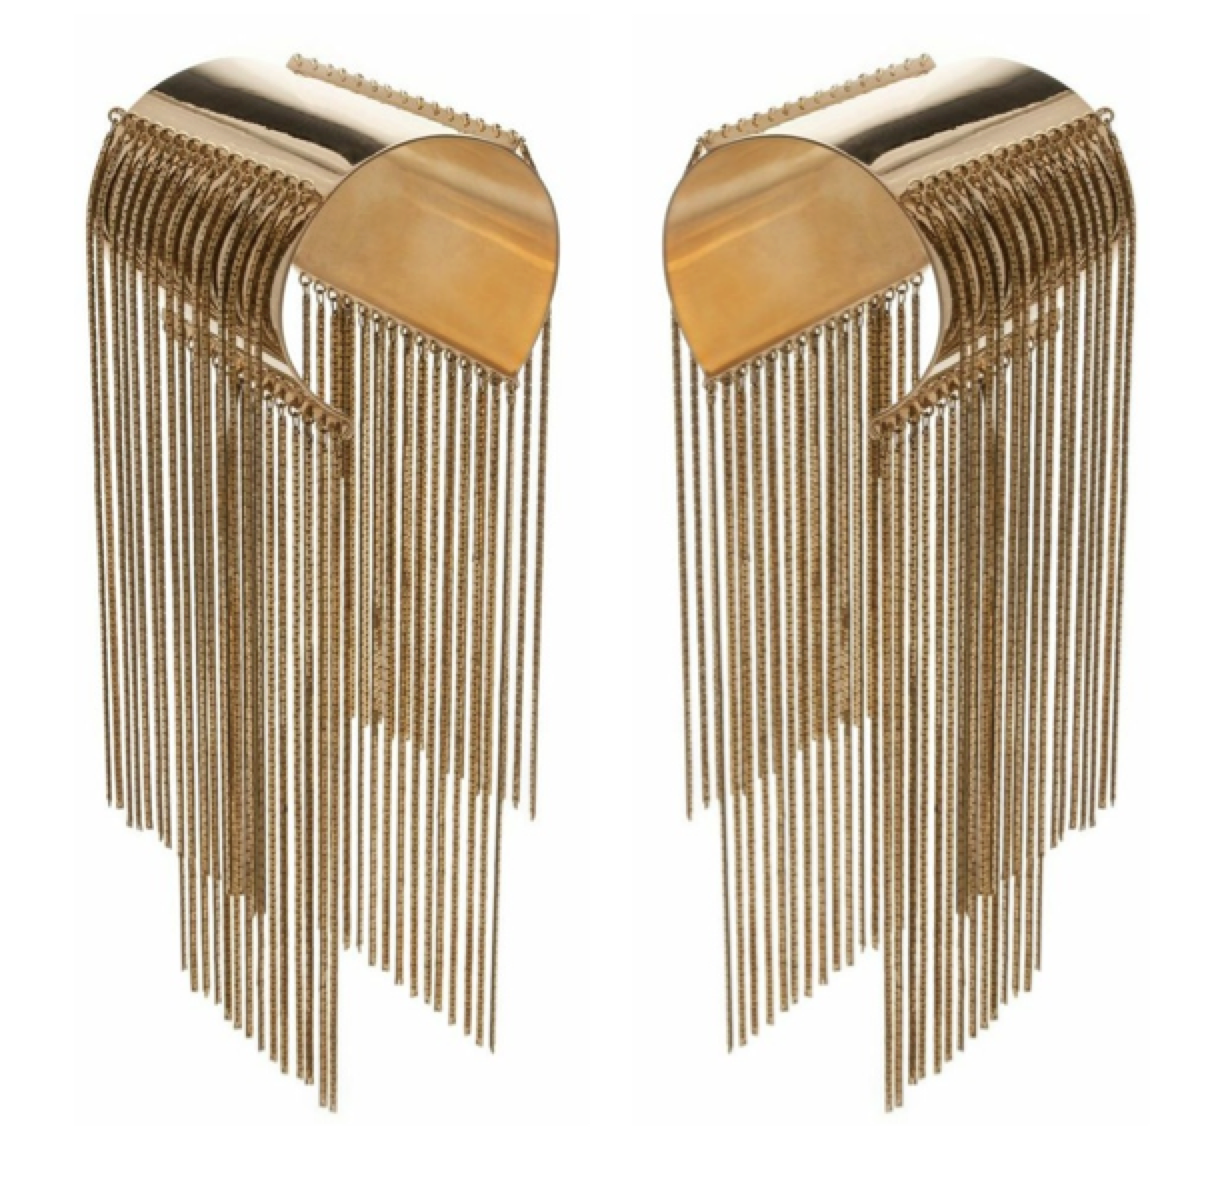 Monica Sordo Medusa cuff with fringes in gold